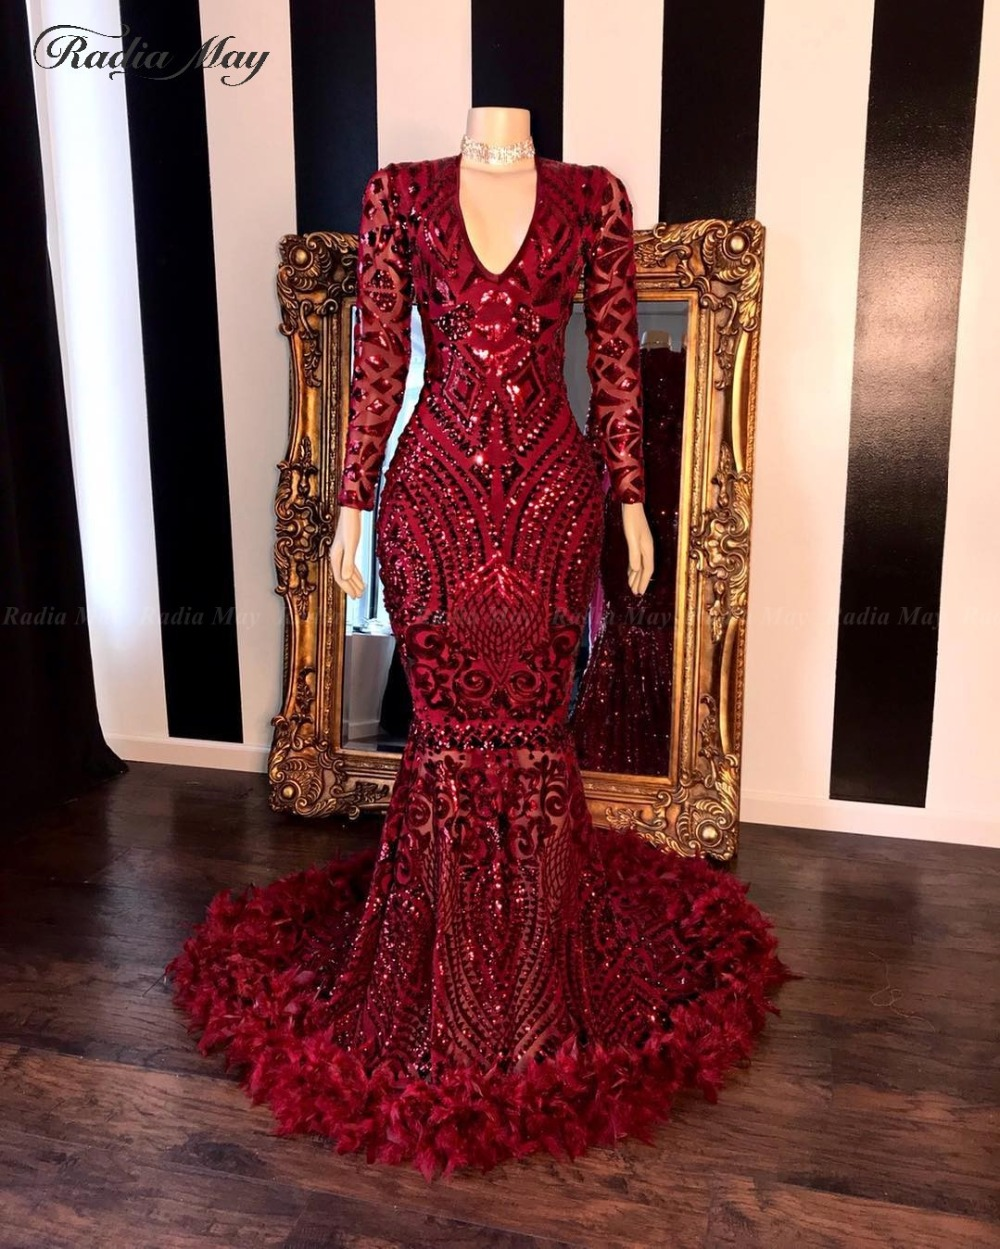 Burgundy Sequin Long Sleeves Mermaid African Prom Dresses Feathers Train V-Neck Plus Size Silver Evening Gowns Graduation Dress